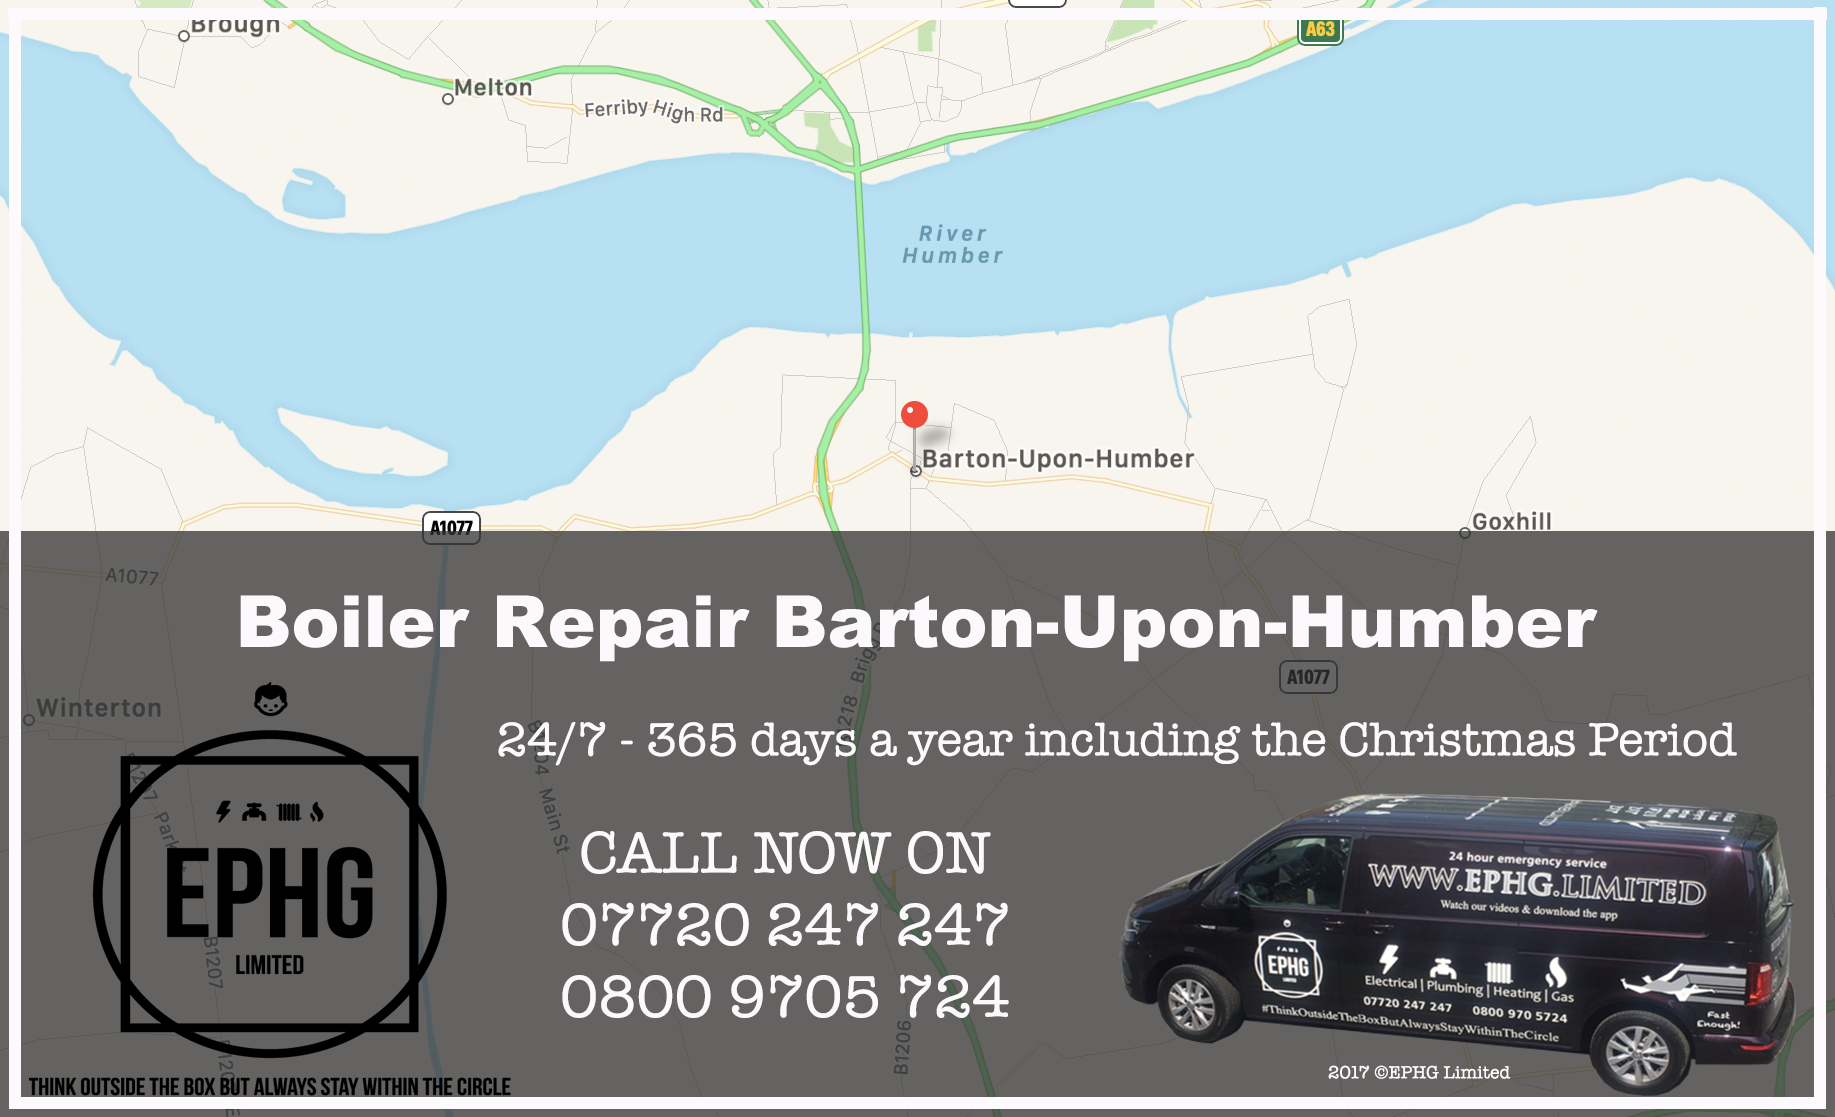 24 Hour Emergency Boiler Repair Barton-upon-Humber